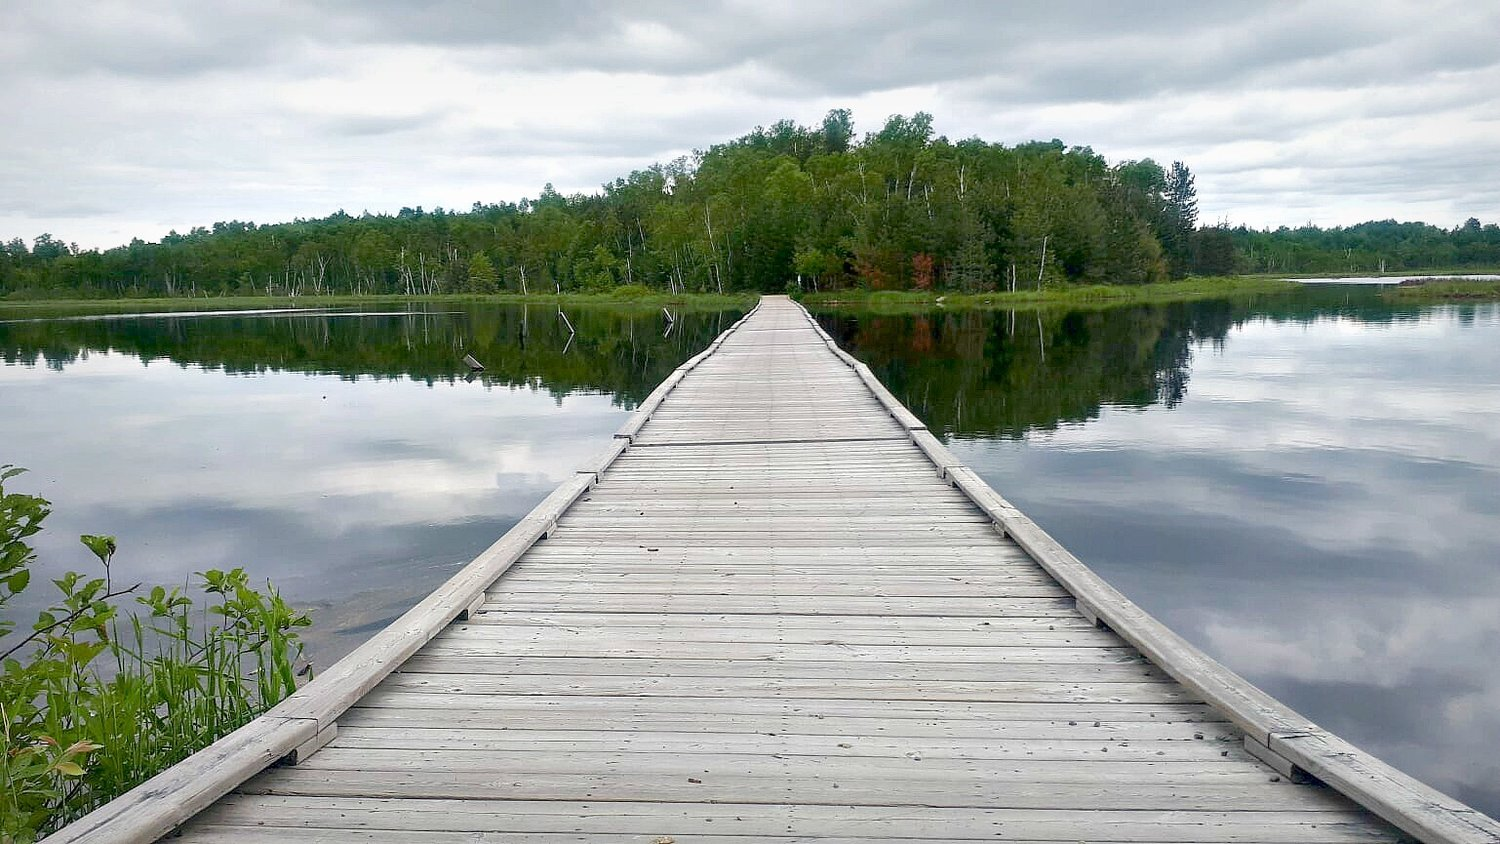 LAKE LAURENTIAN CONSERVATION AREA TO MOONLIGHT BEACH